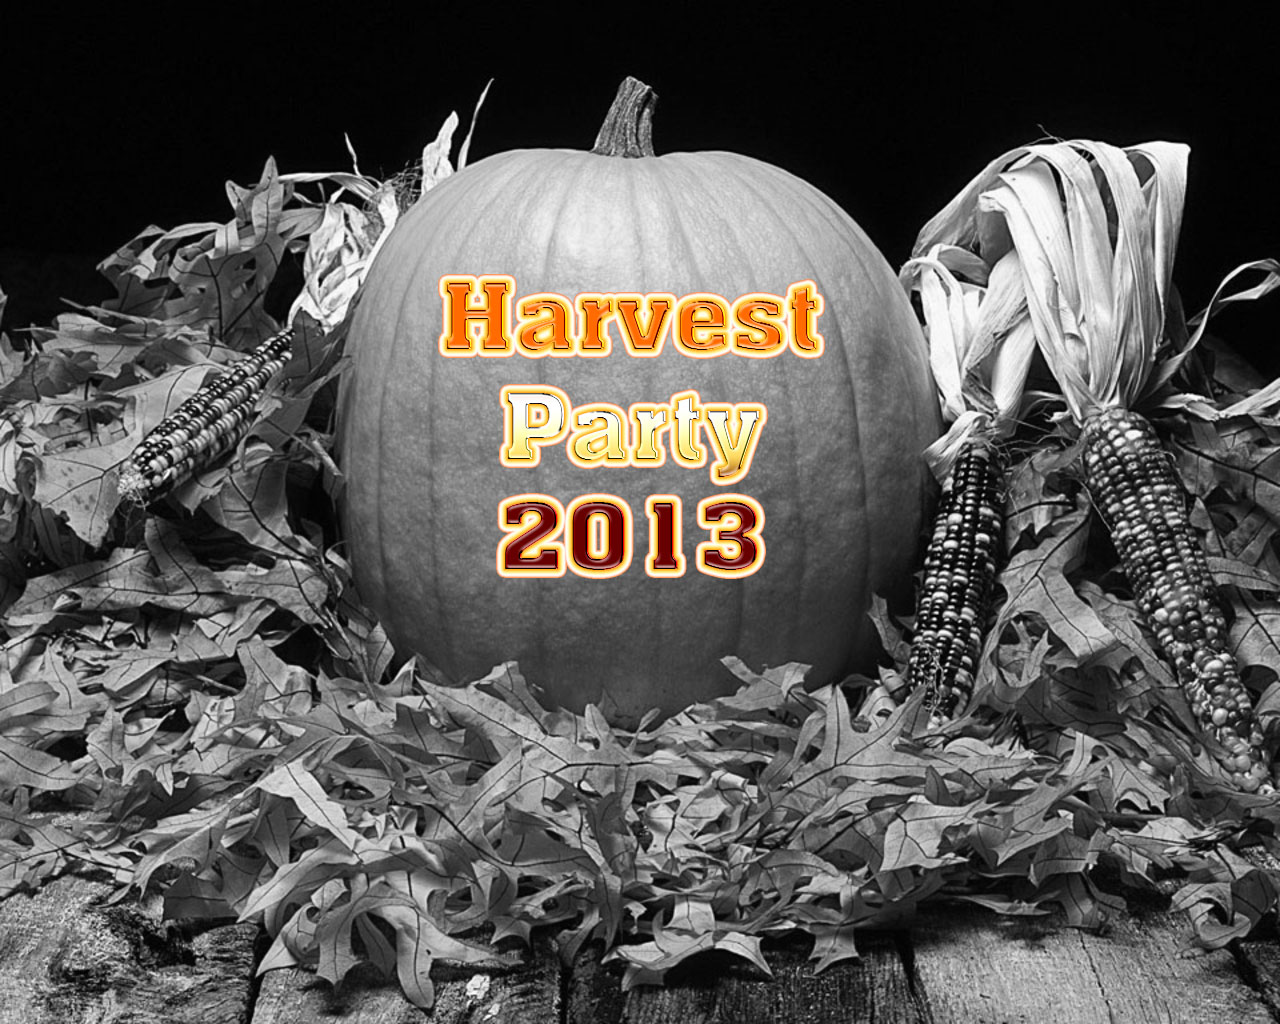 harvest party -2013